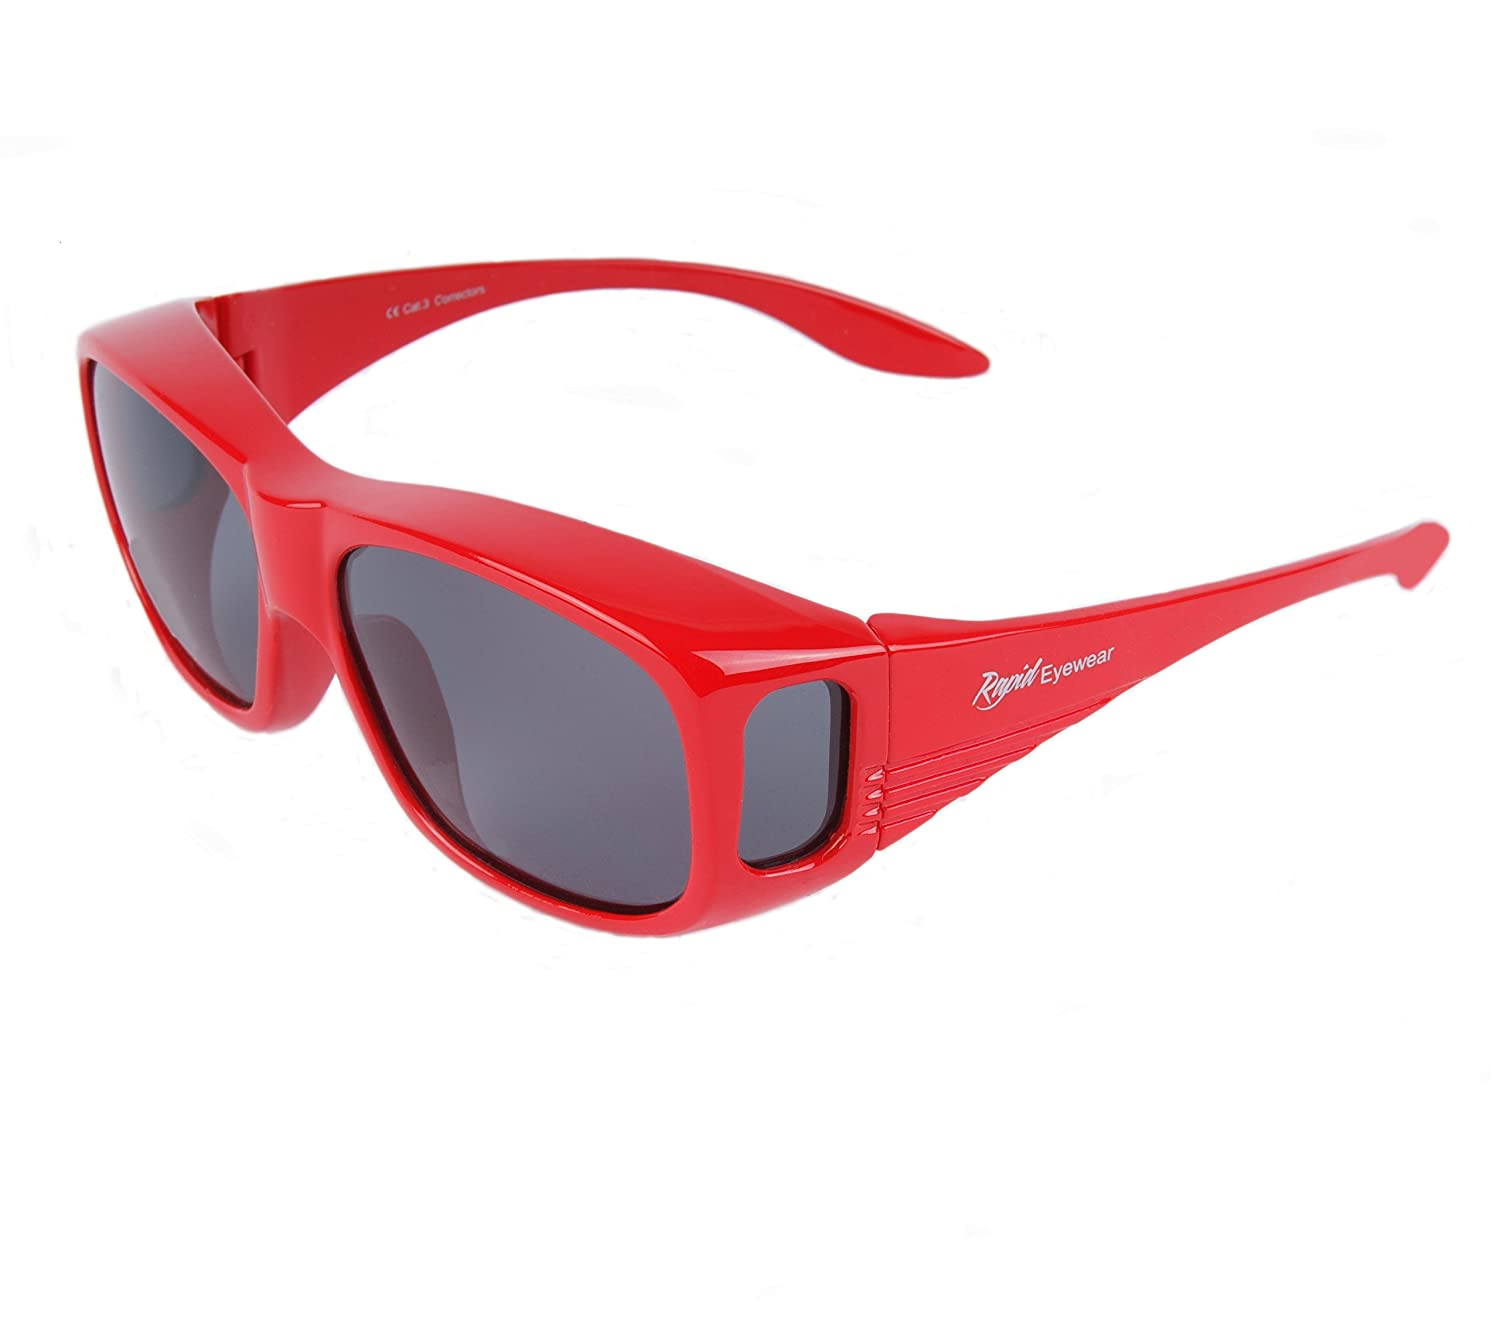 5c99cd42c78 Rapid Eyewear Polarized UV Overglasses. Mens and Womens Red Sunglasses That Fit  Over Glasses for Driving